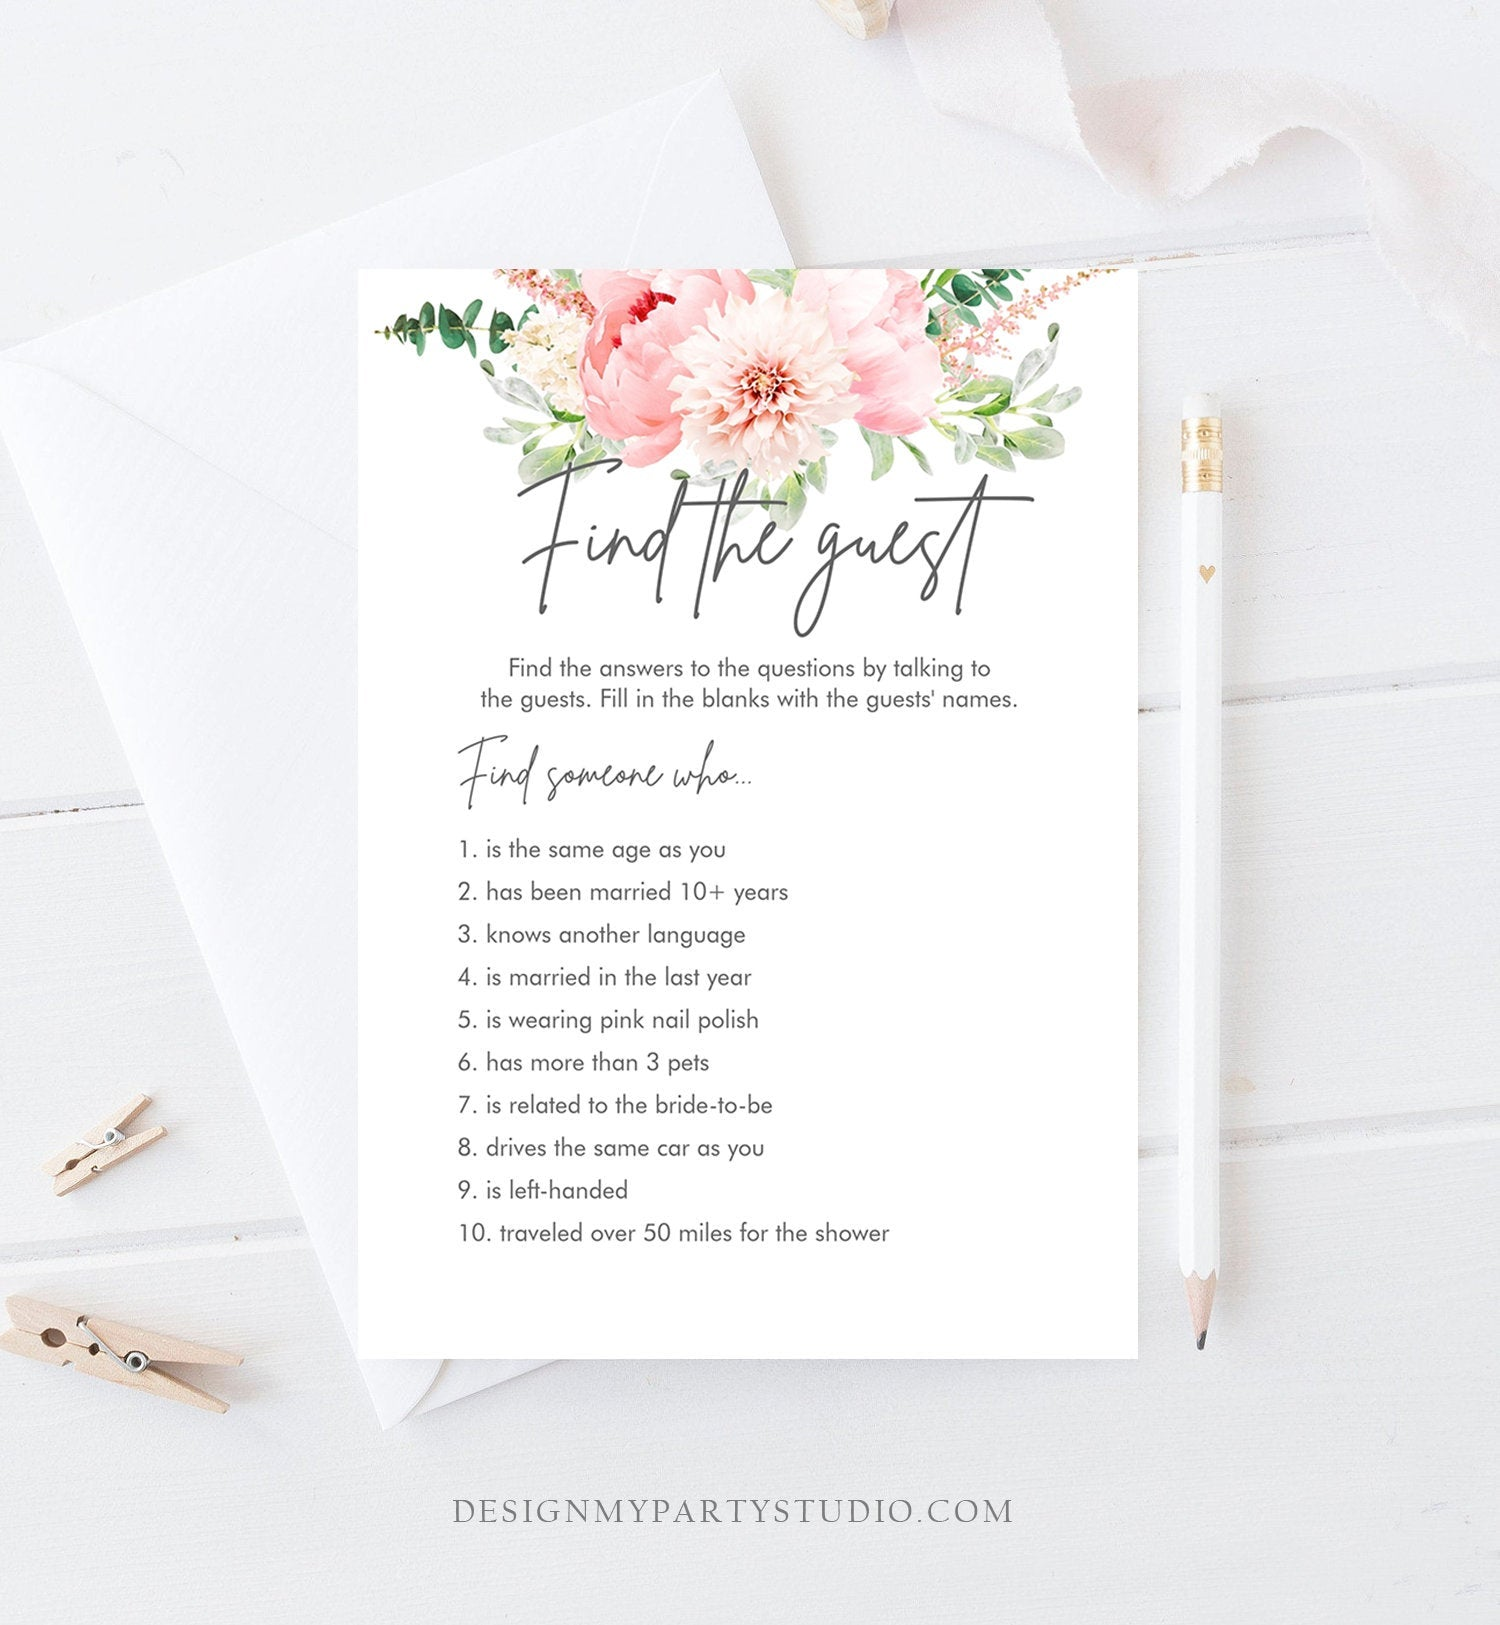 Editable Find The Guest Bridal Shower Game Botanical Flowers Floral Game Pink Peony Greenery Digital Download Corjl Template Printable 0167